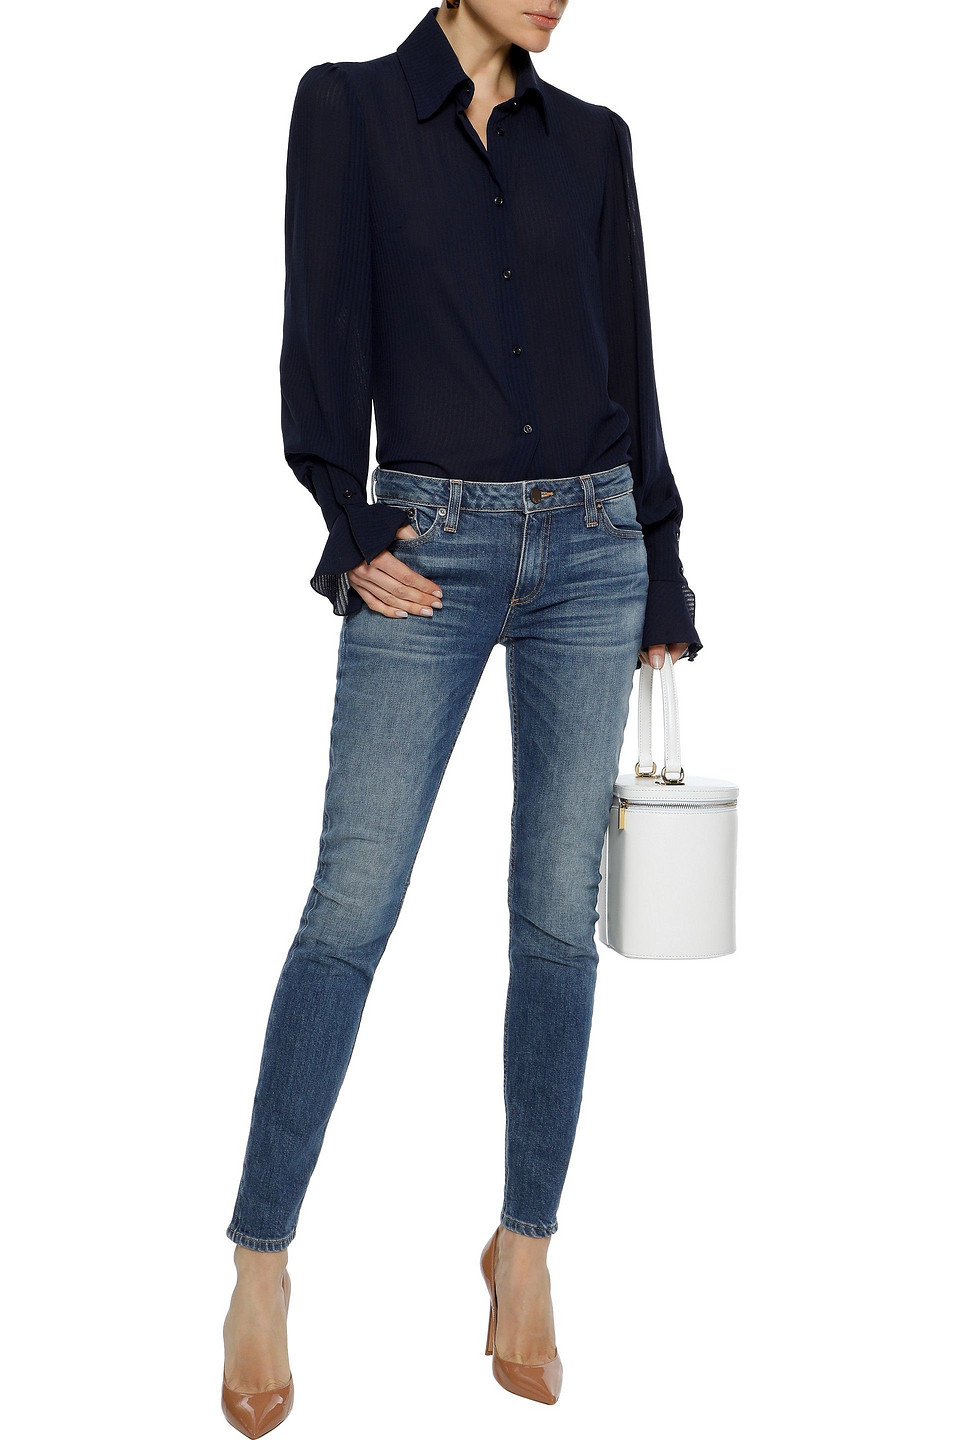 Alice + Olivia | Alice + Olivia Woman Low-rise Faded Skinny Jeans Mid Denim | Clouty